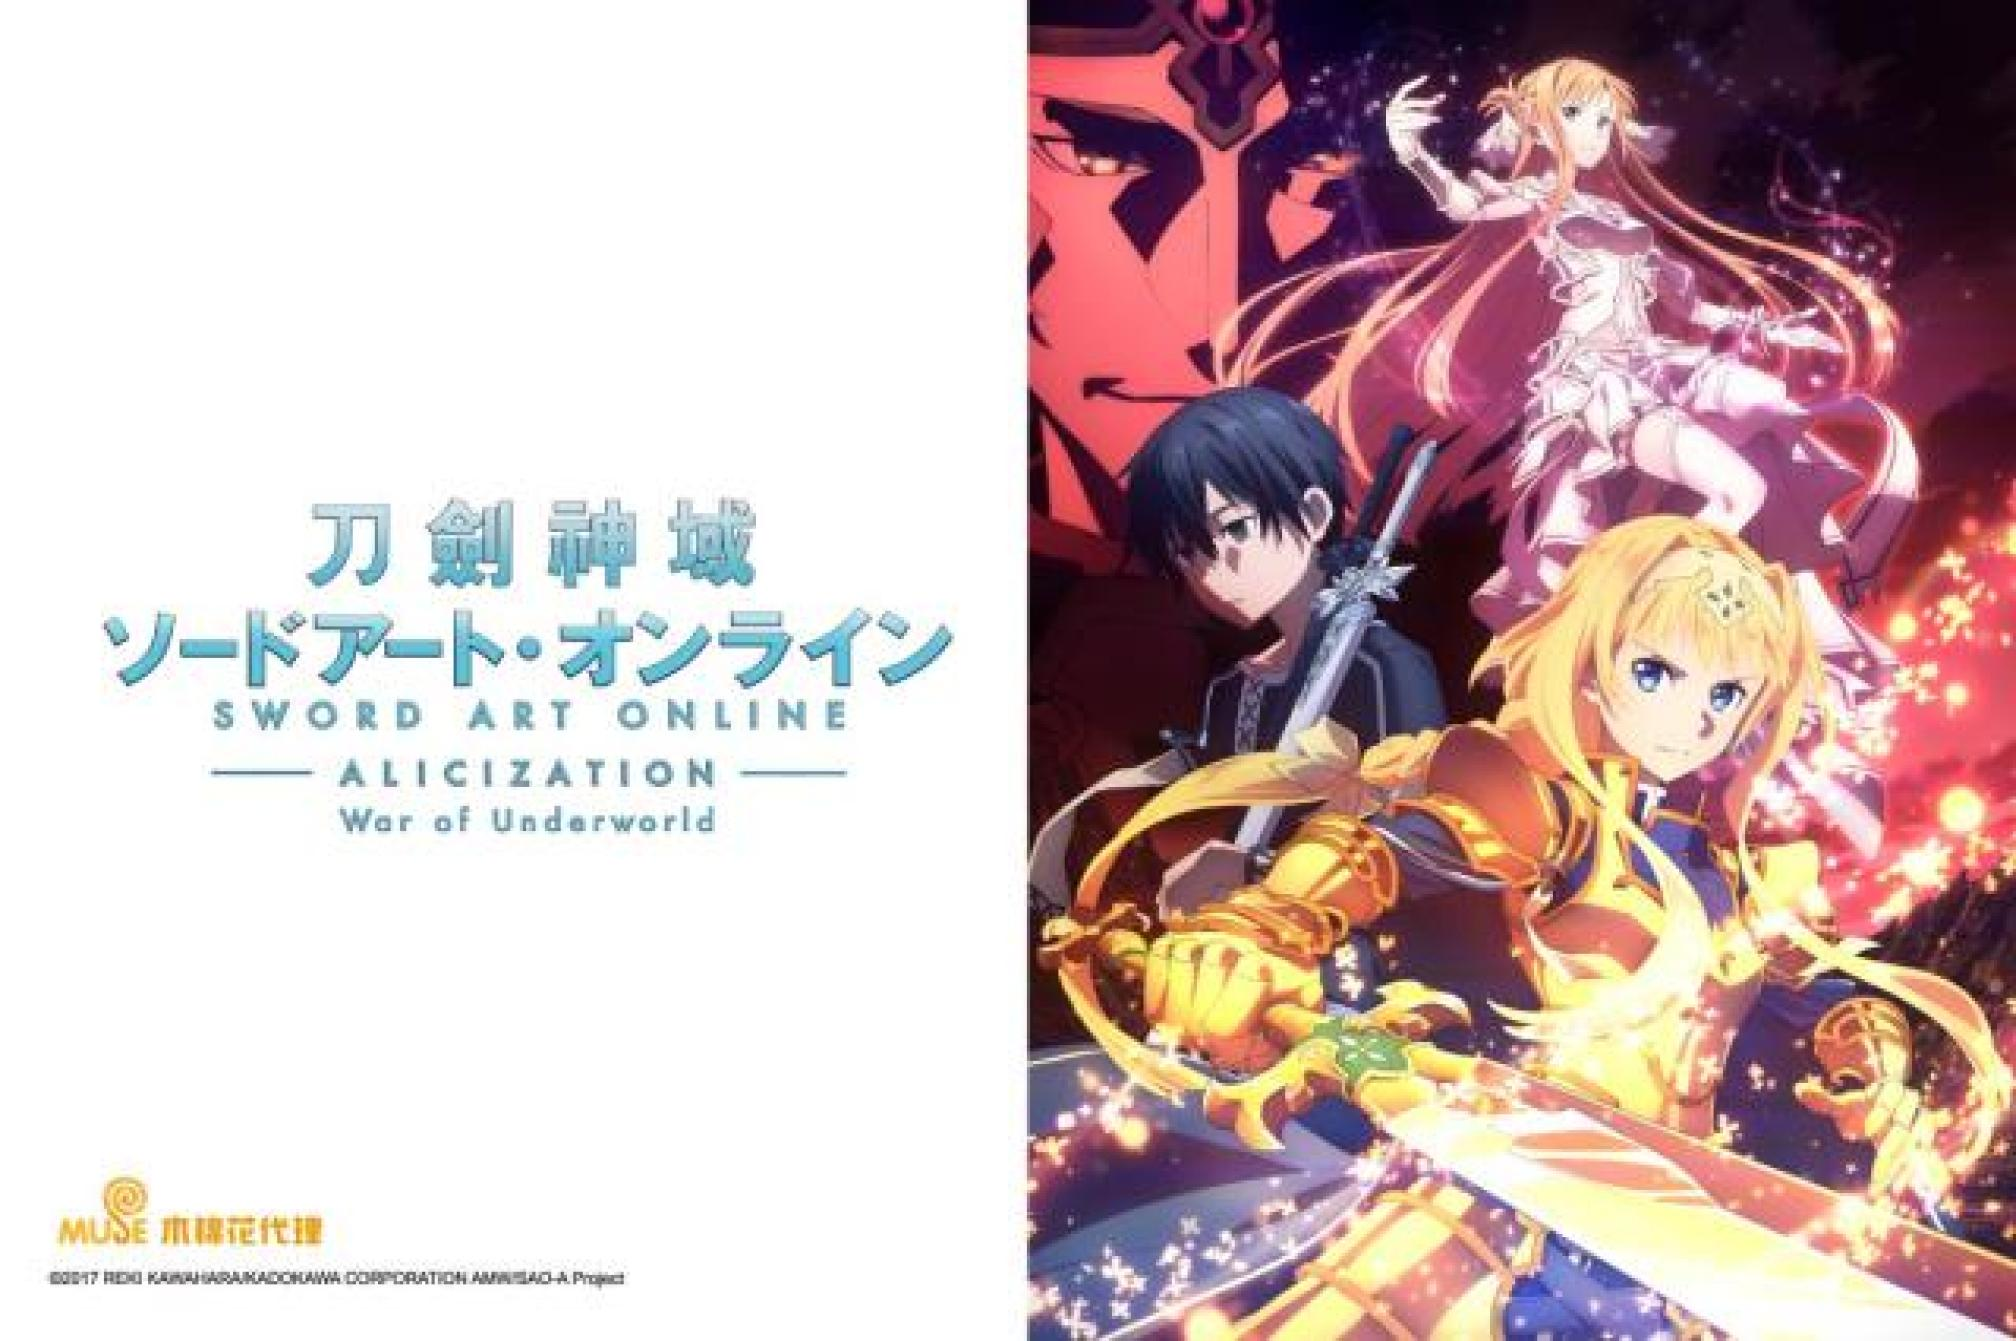 刀劍神域 第三季 Alicization War of Underworld劇照 1